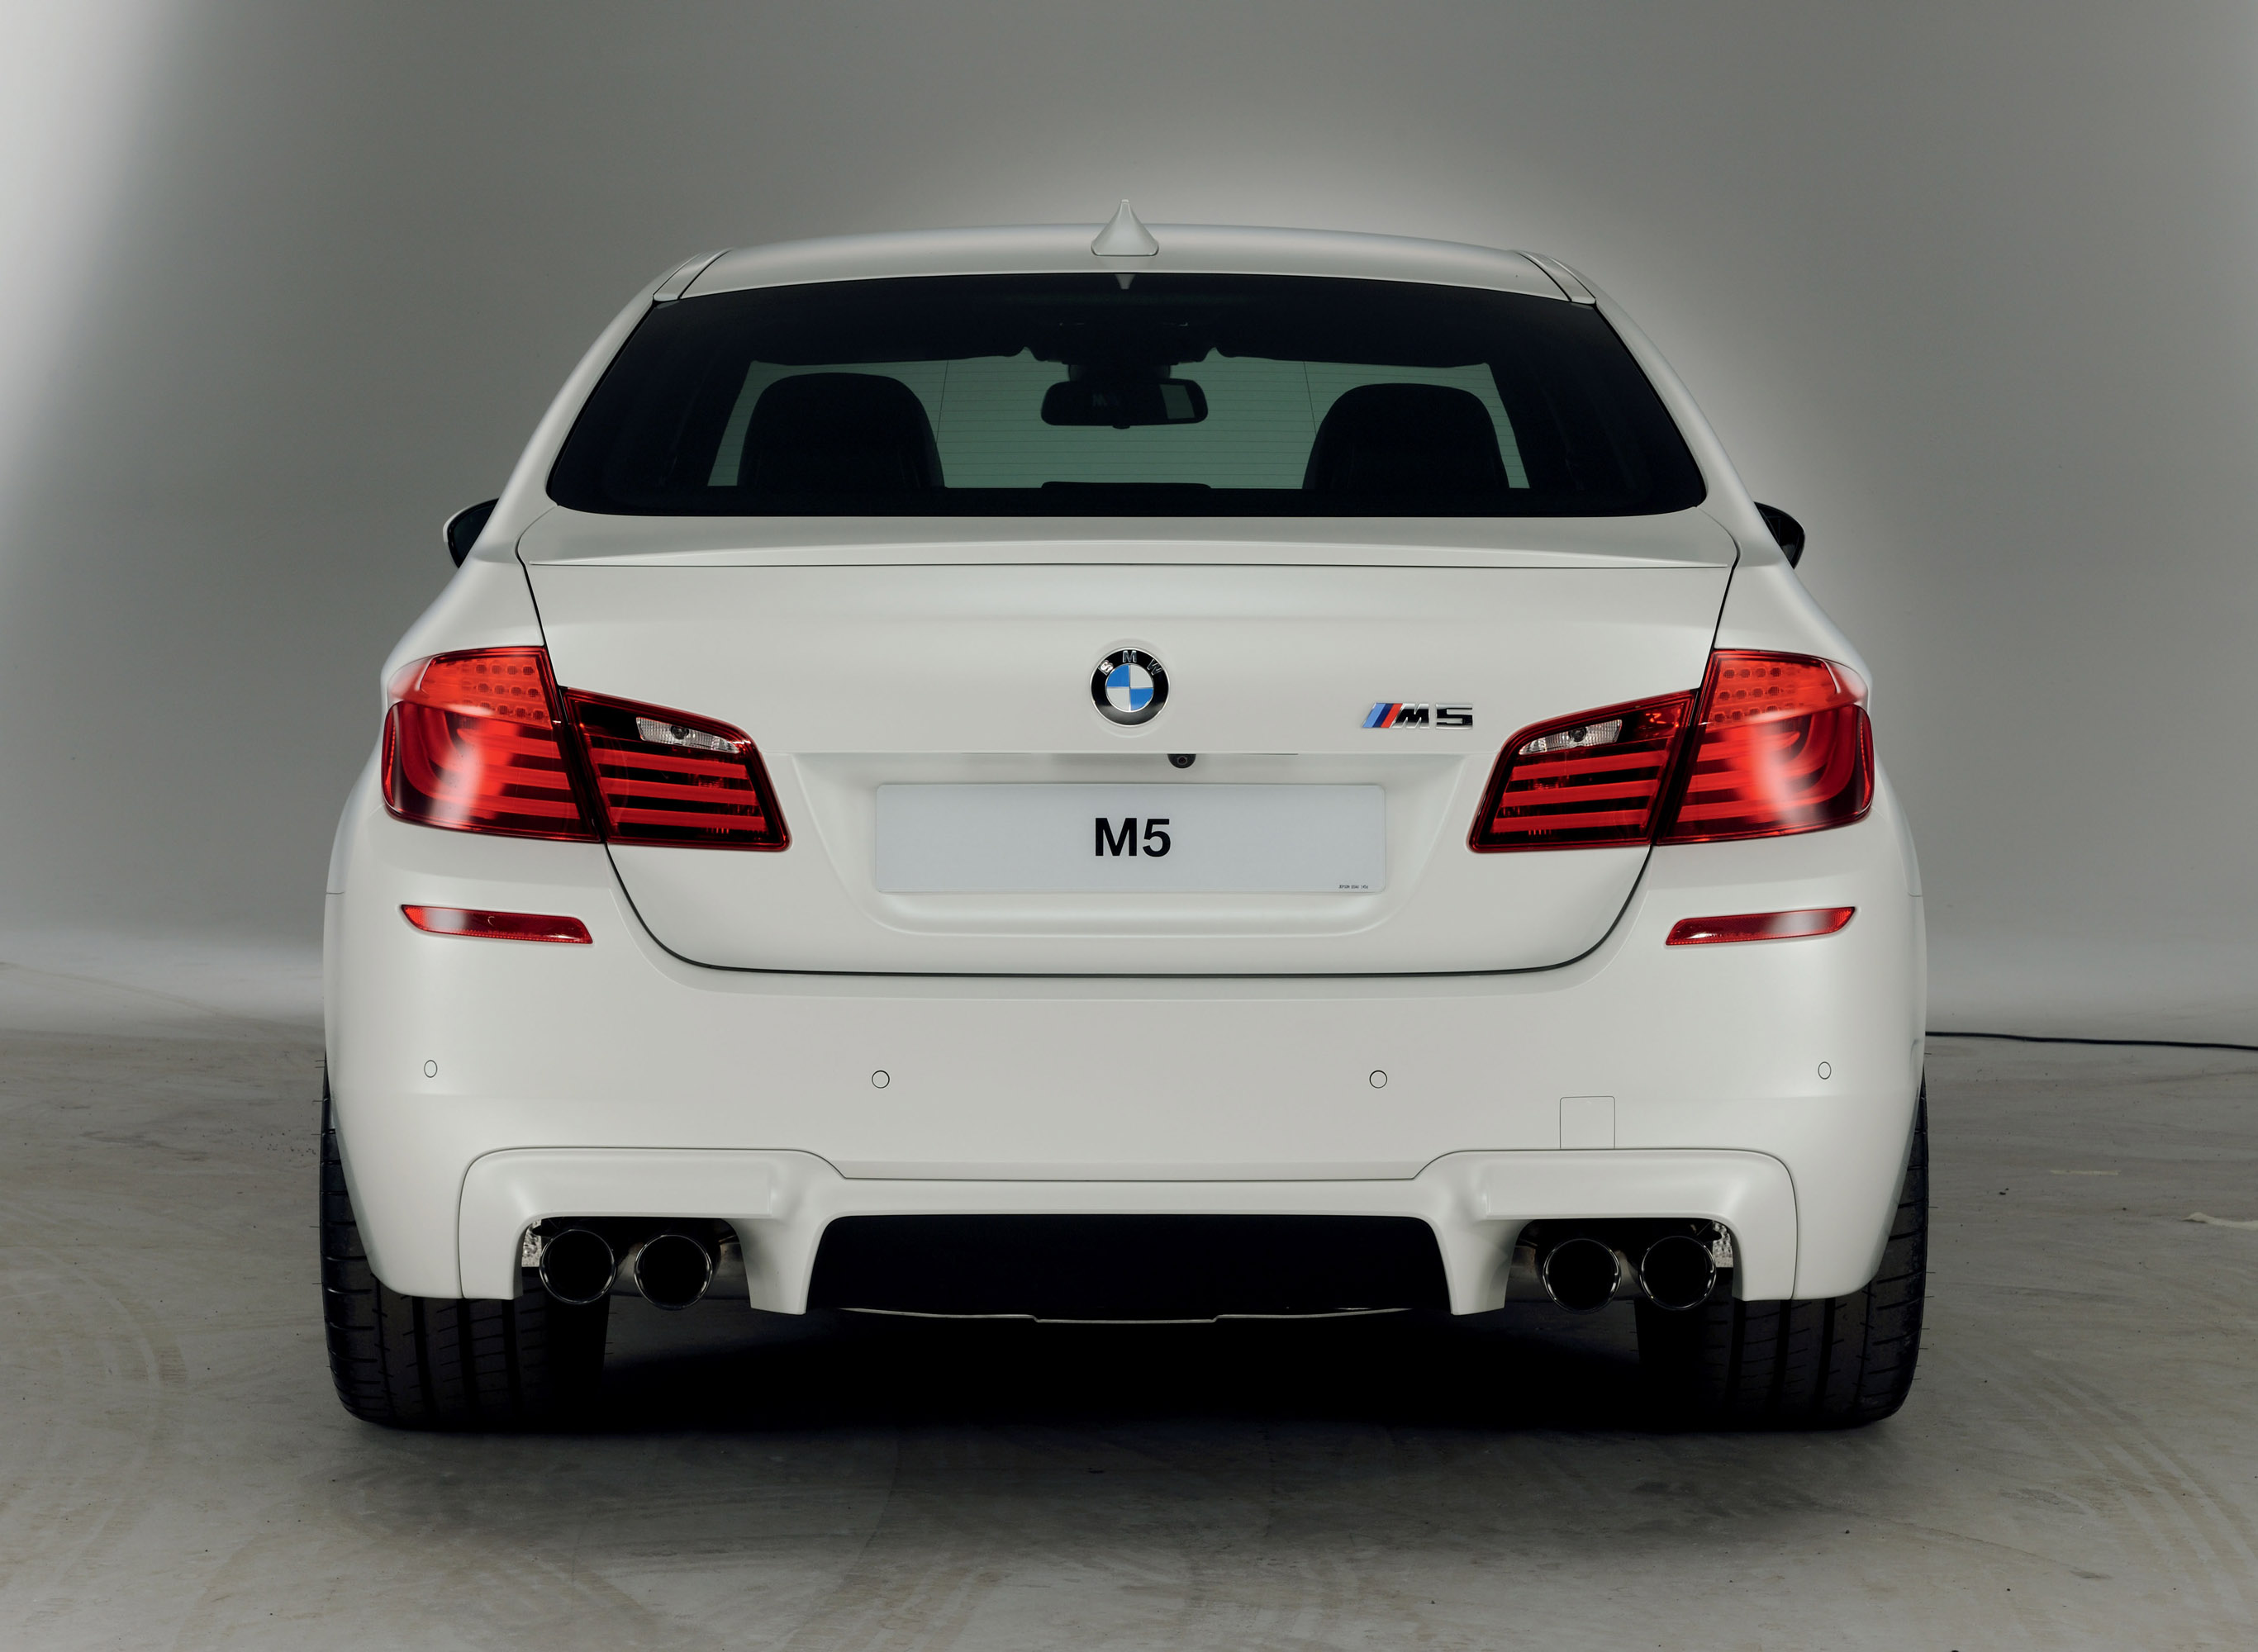 2012 BMW M5 M Performance Edition - Picture 69665